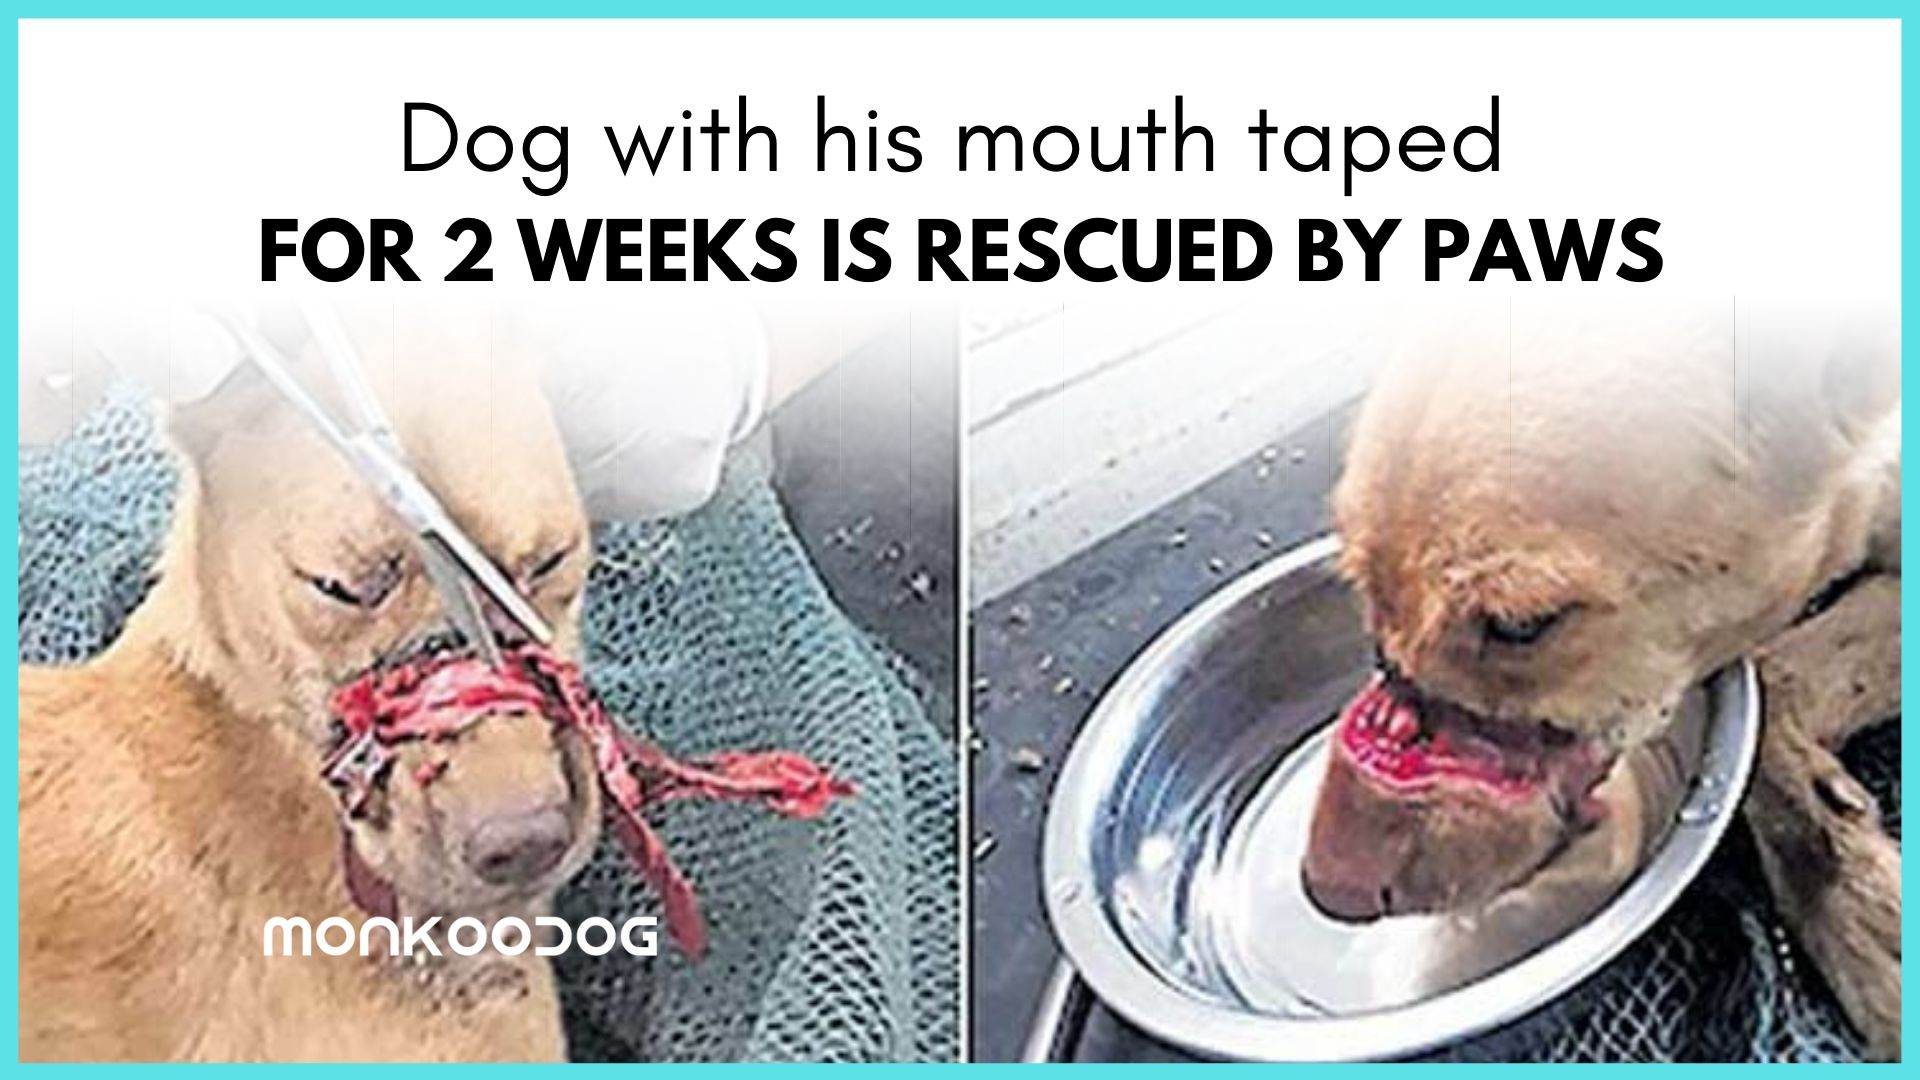 dog with his mouth sealed with tape for 2 weeks rescued by paws in Kerala